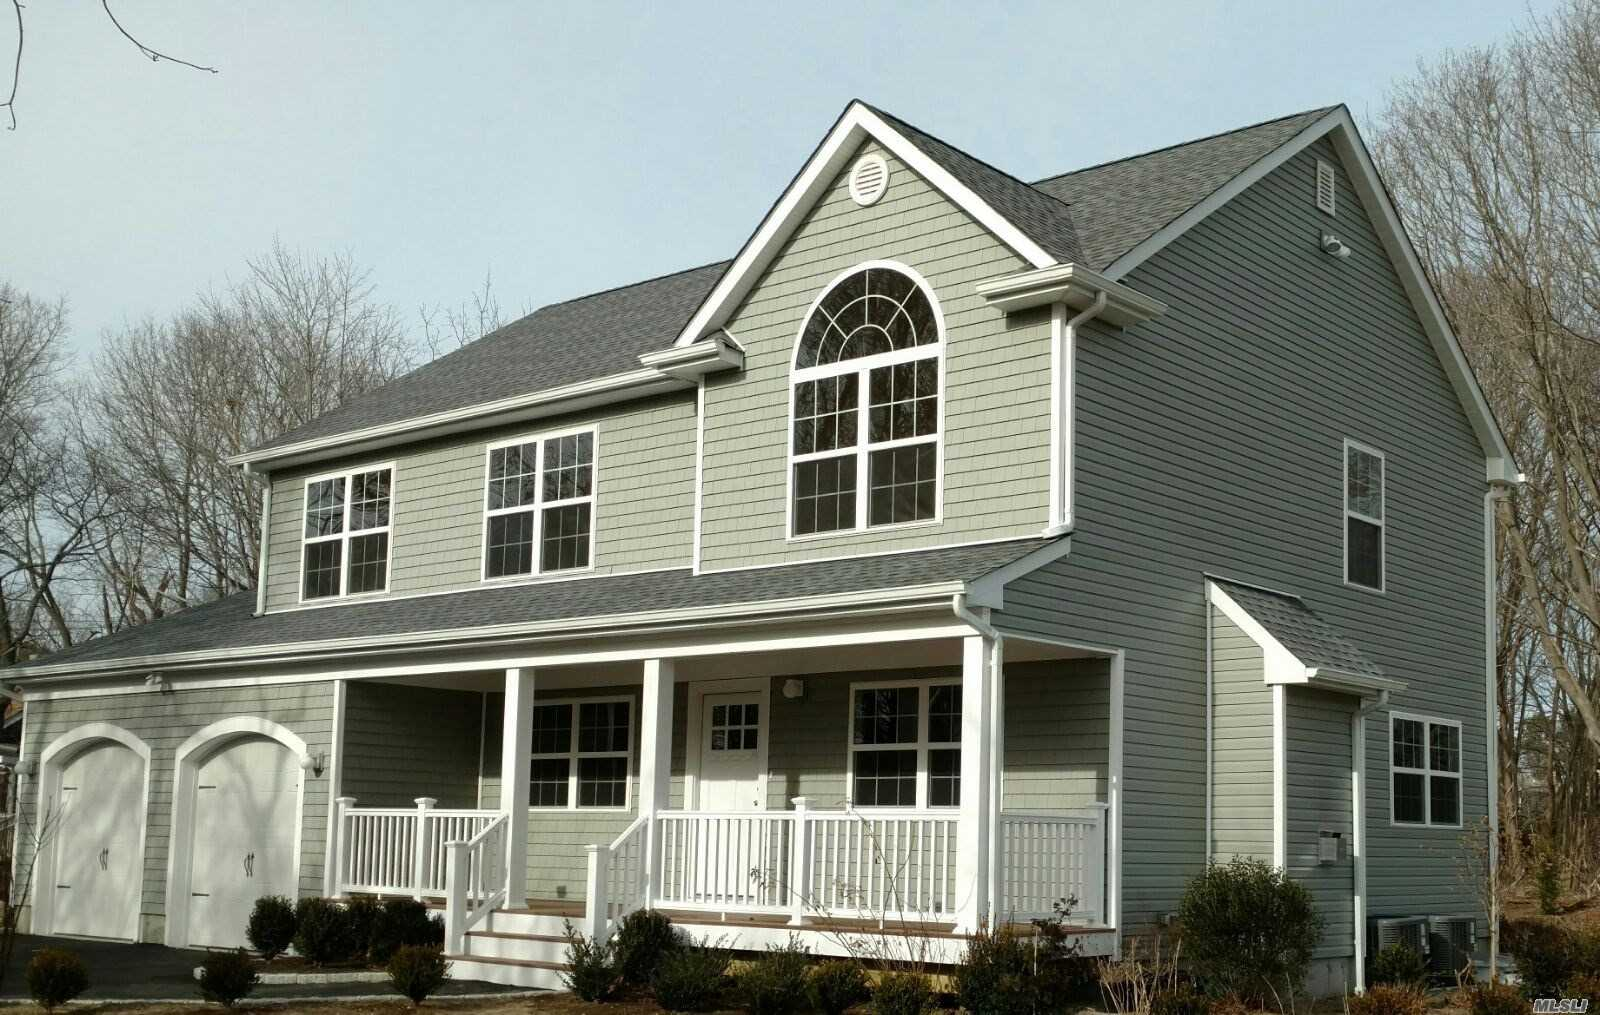 2016 New Construction Custom Colonial. Great Room, Lr, Dr, Modern Stainless Kitchen, 4 Bedrooms, 3 Bathrooms, Fireplace, Cac, Oha Heat, Full Basement, 2 Car Garage, Deck, Nice Landscape, Private.